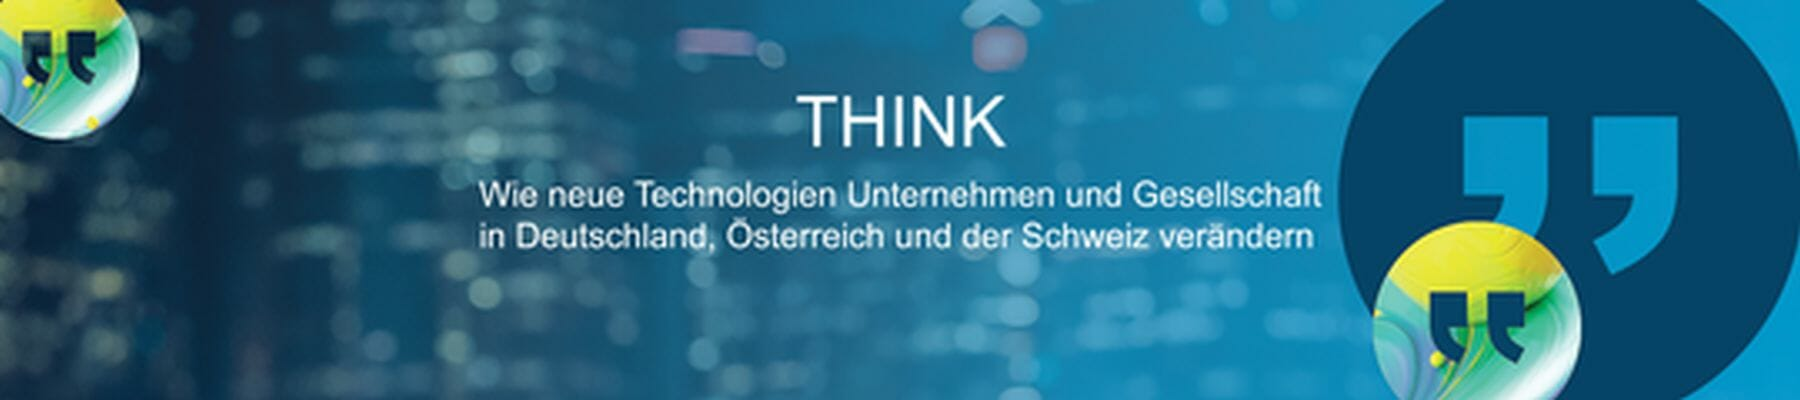 IBM THINK Blog